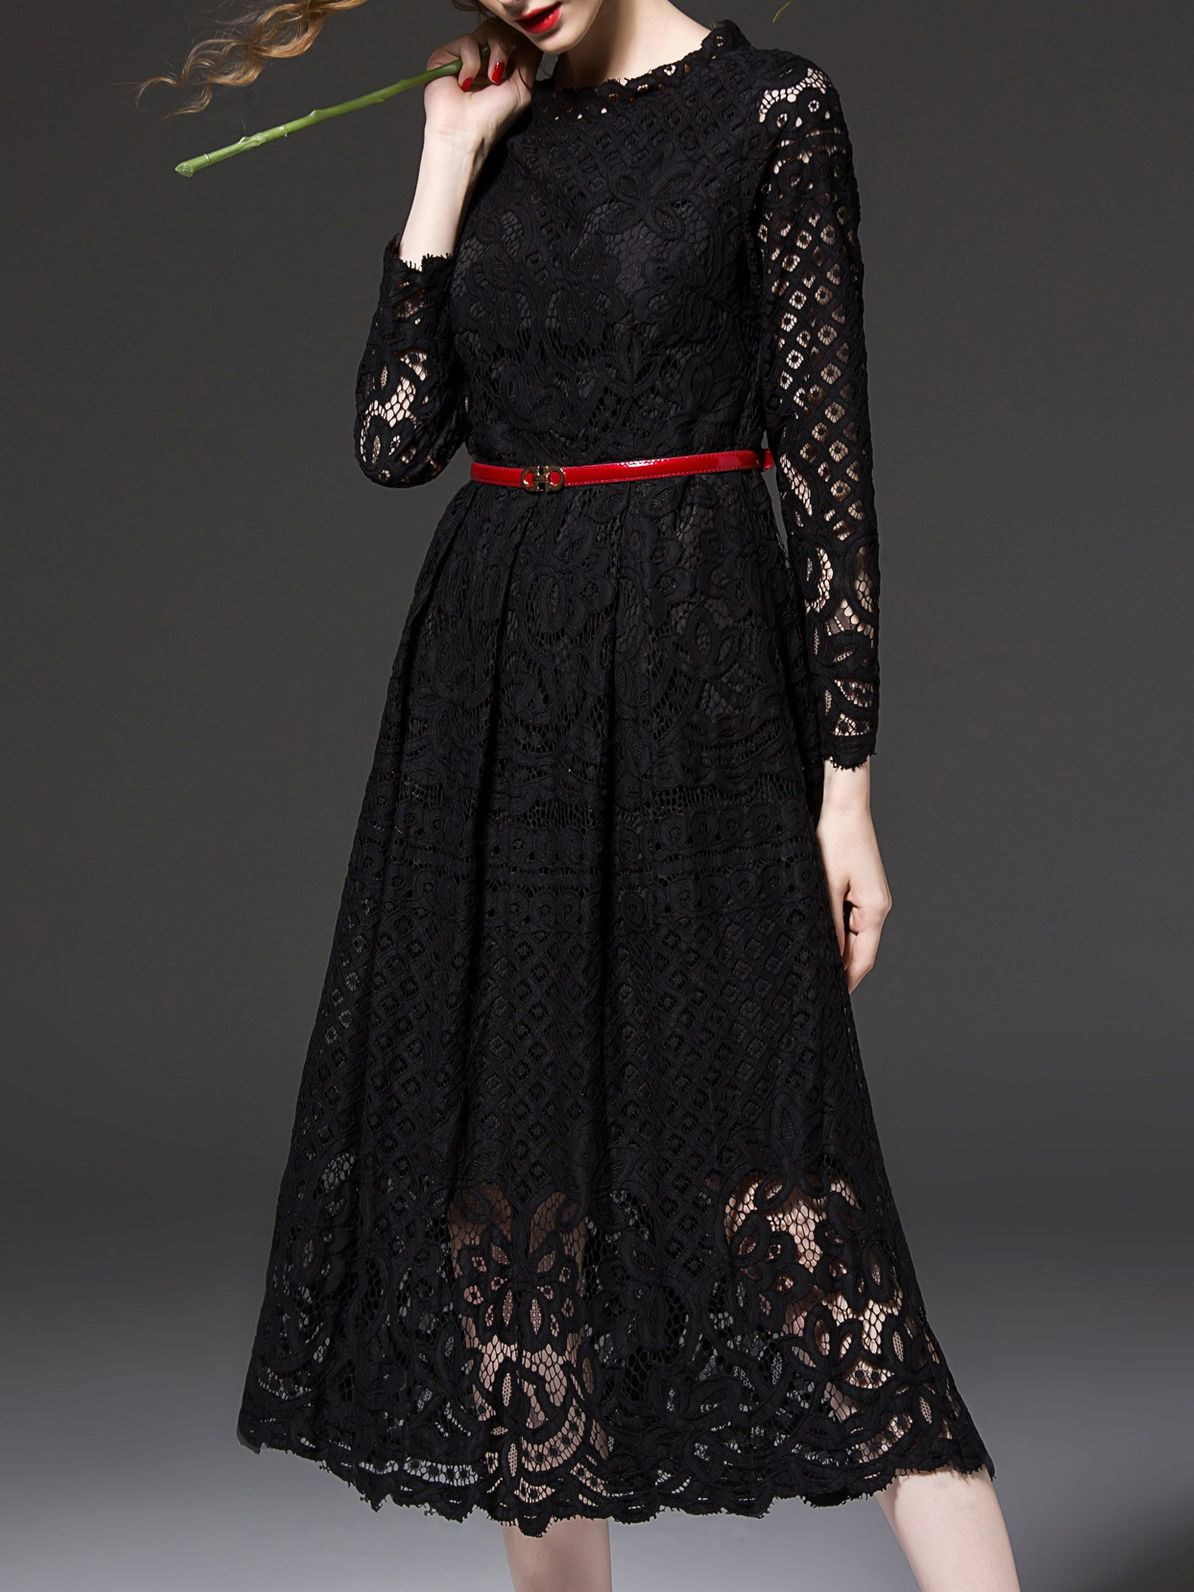 Black embroidered aline lace dress lace dress dress online and boho